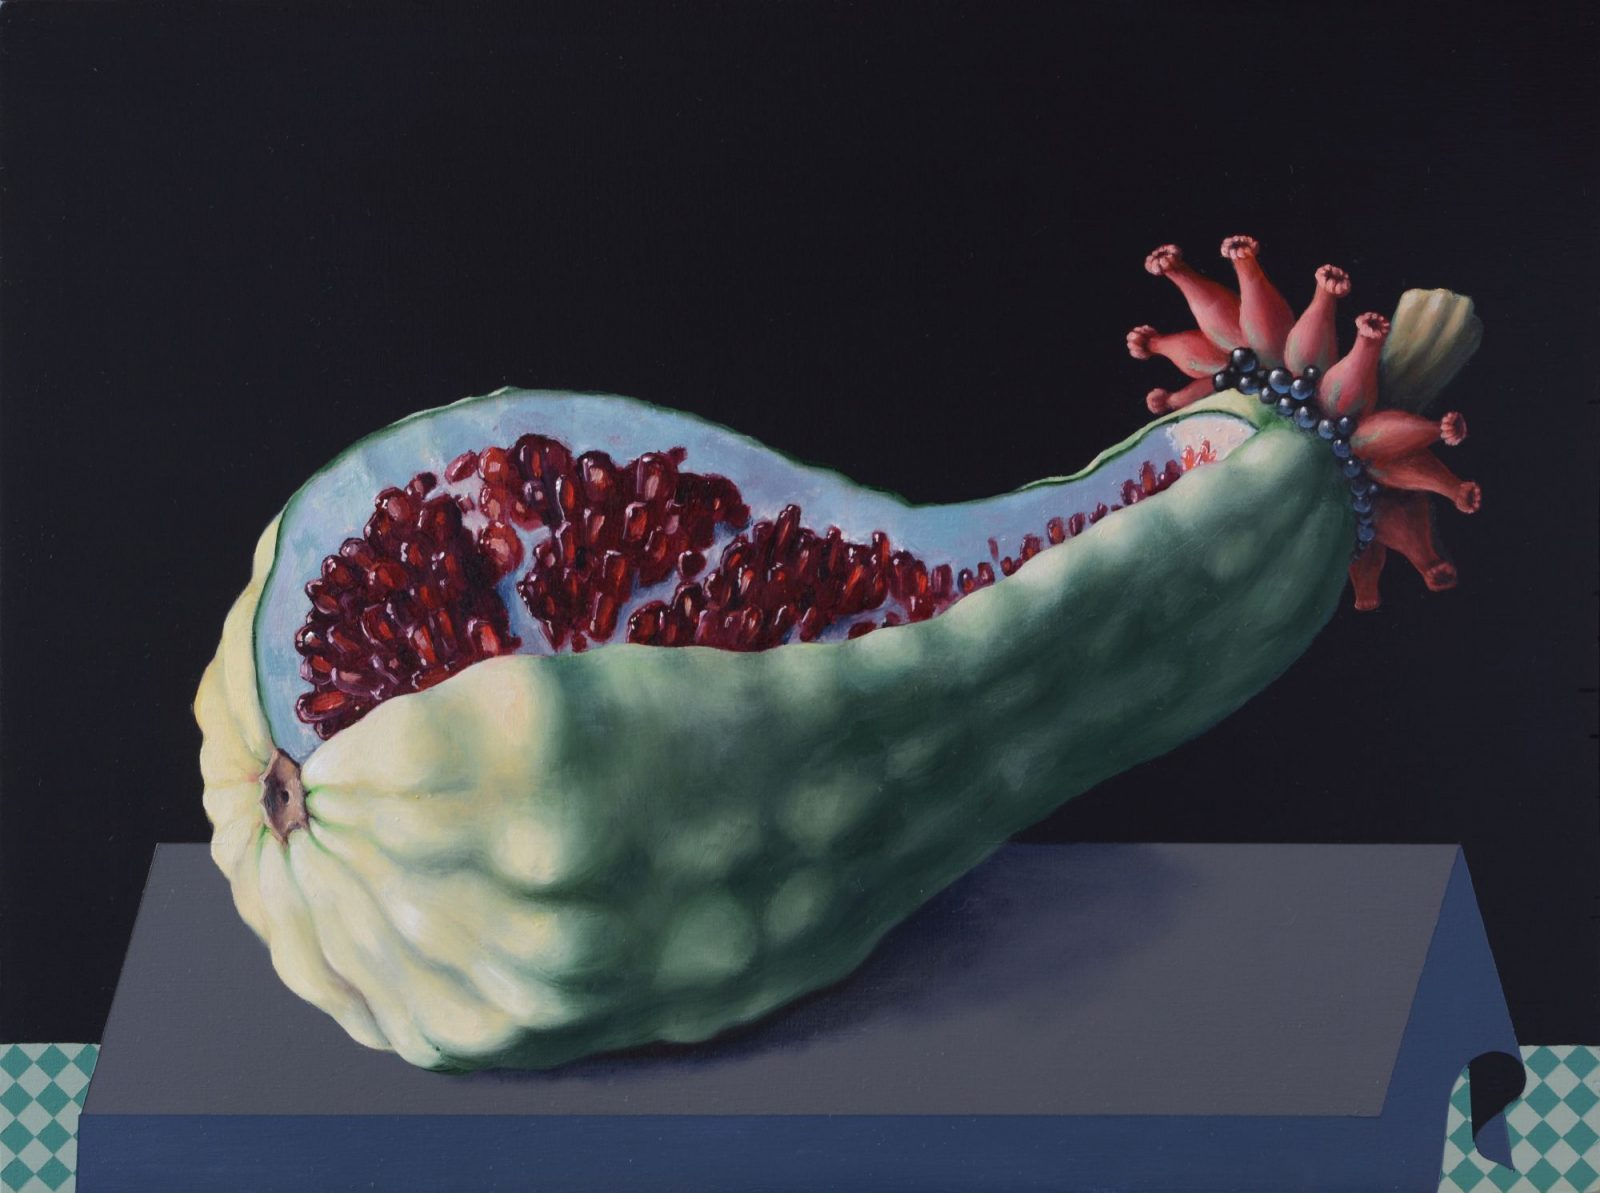 Máté Orr: Forbidden Fruit